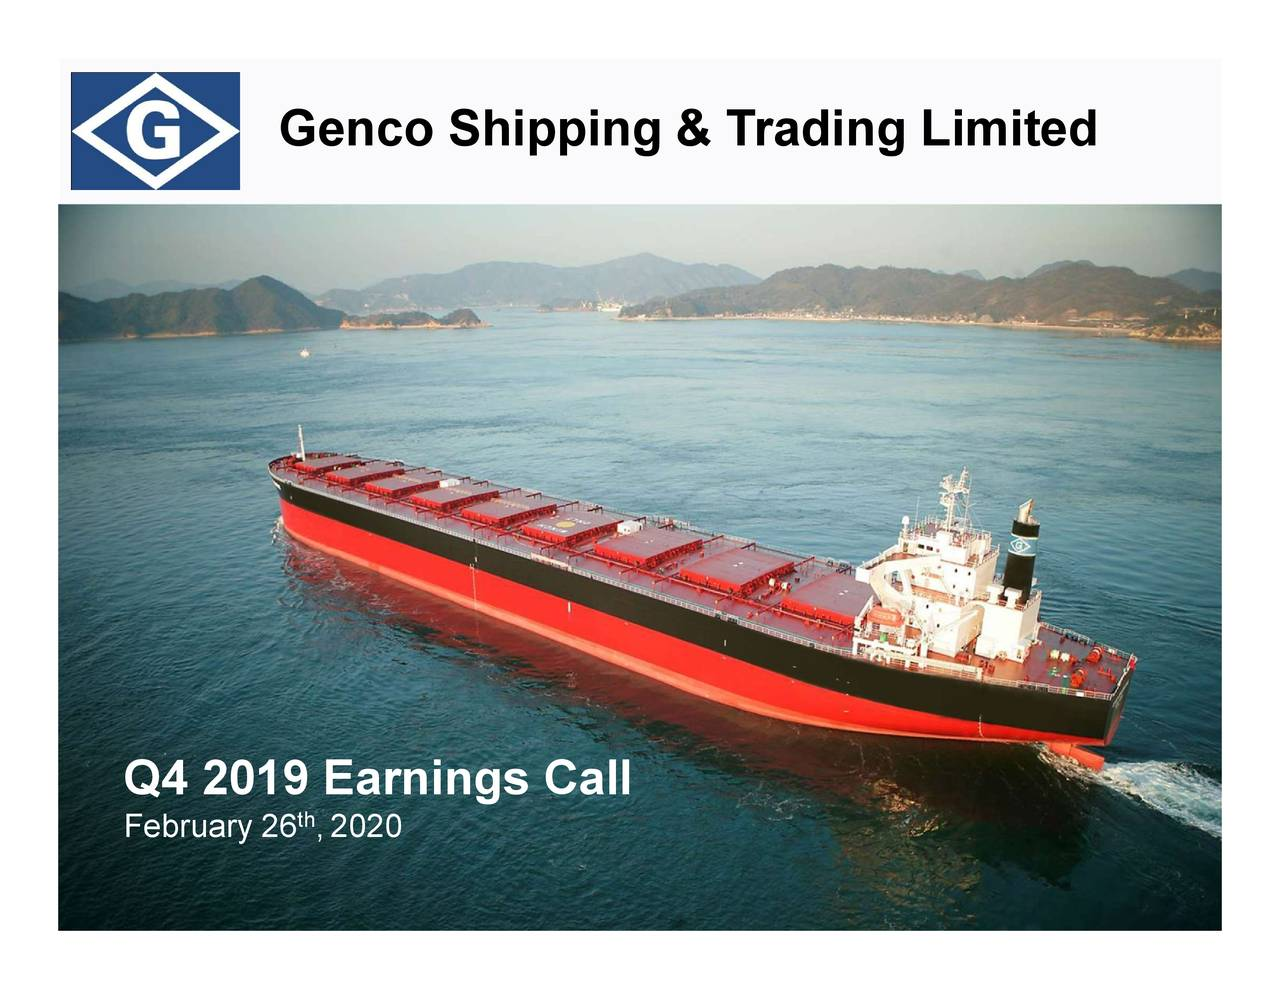 Genco Shipping & Trading Limited 2019 Q4 - Results - Earnings Call Presentation - Genco Shipping & Trading Limited (NYSE:GNK) | Seeking Alpha